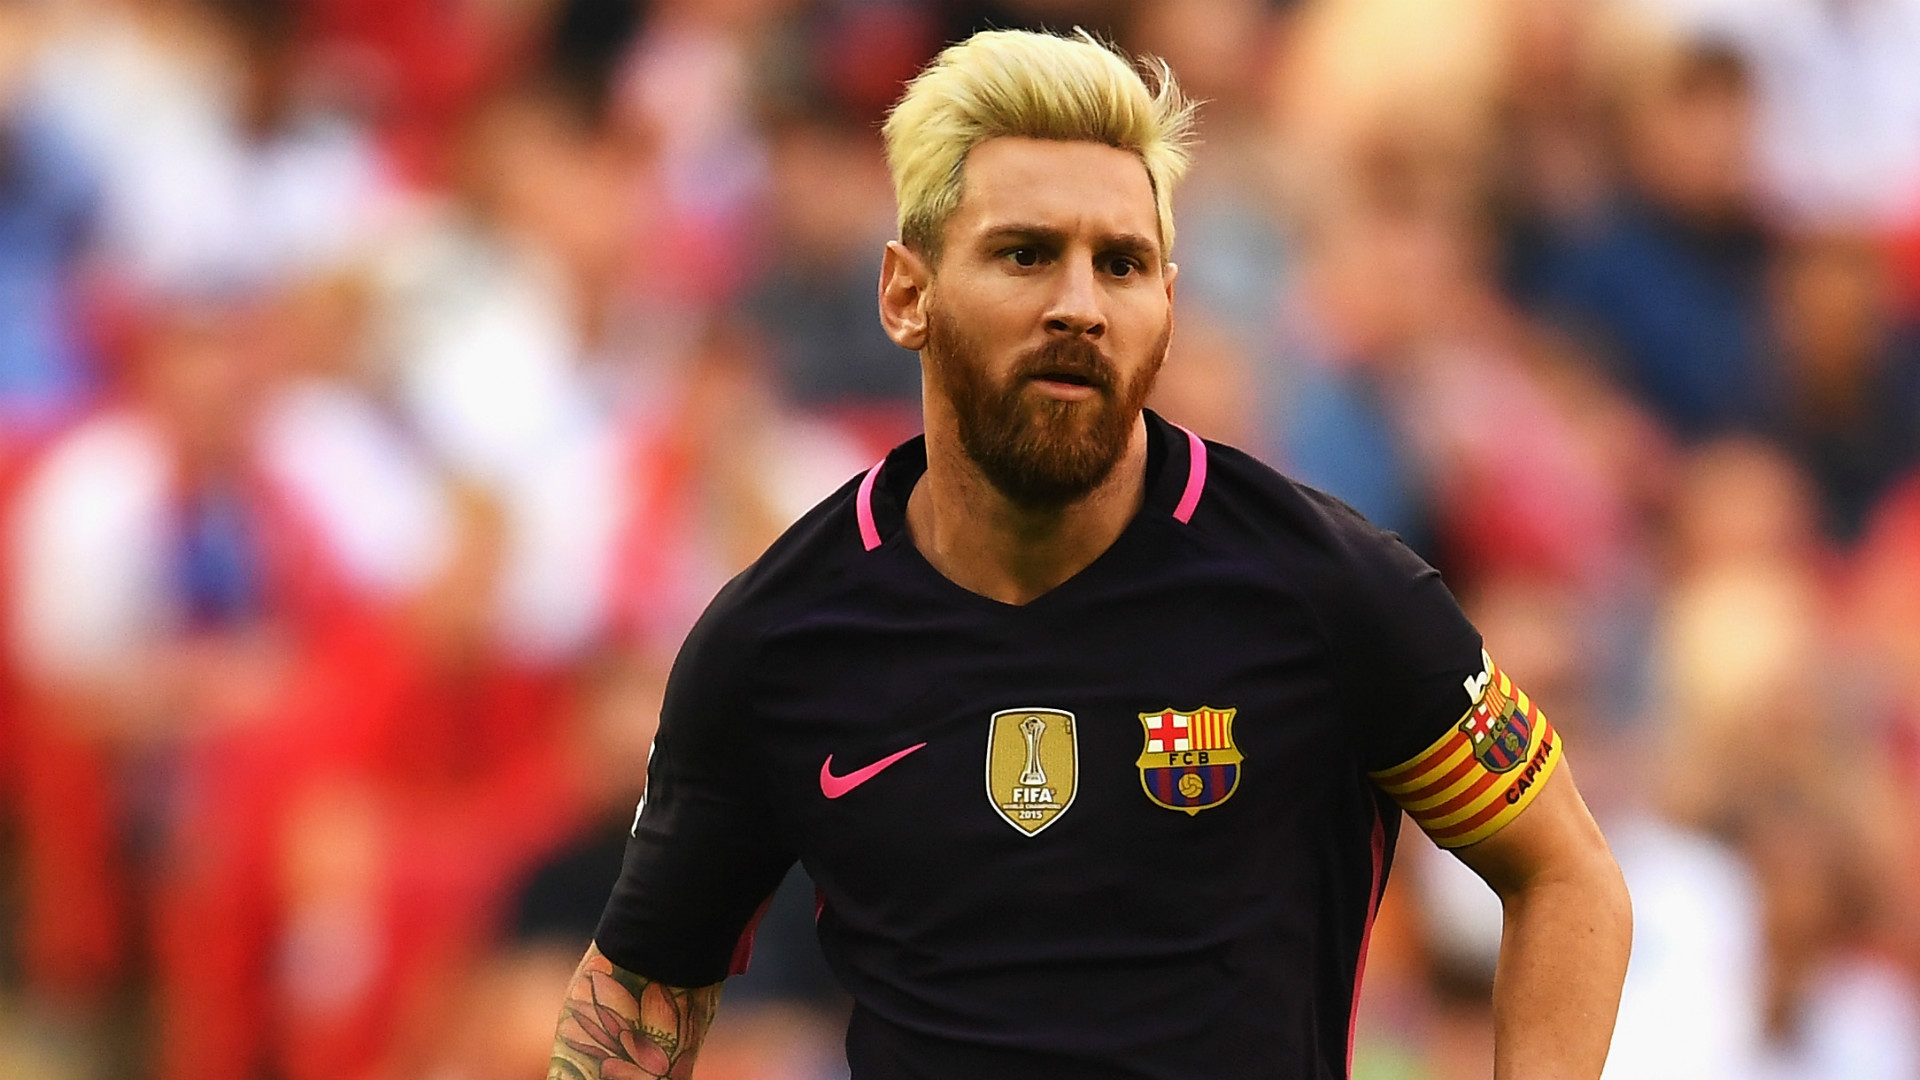 Lionel messi hd wallpaper 2018 inspiring quotes and words in life football ruckus voltagebd Image collections